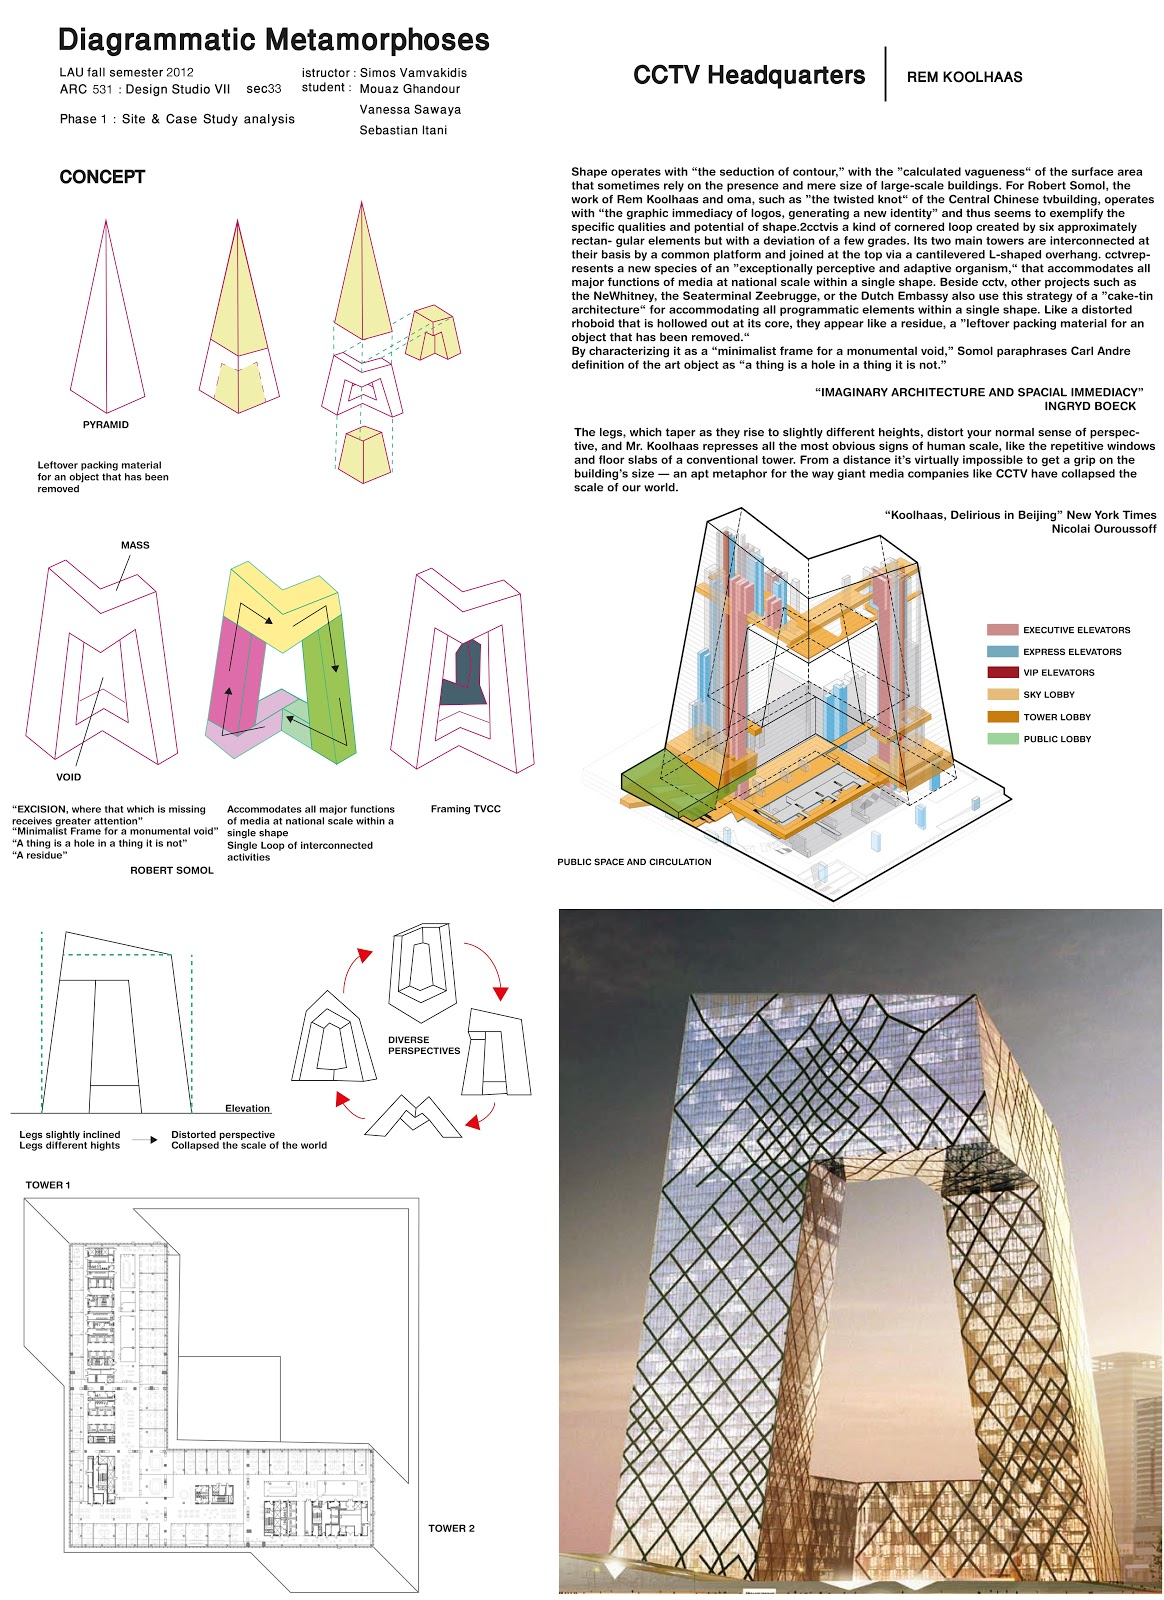 oma cctv1 a concepts diagrams concept diagram architecture site analysis [ 1164 x 1600 Pixel ]